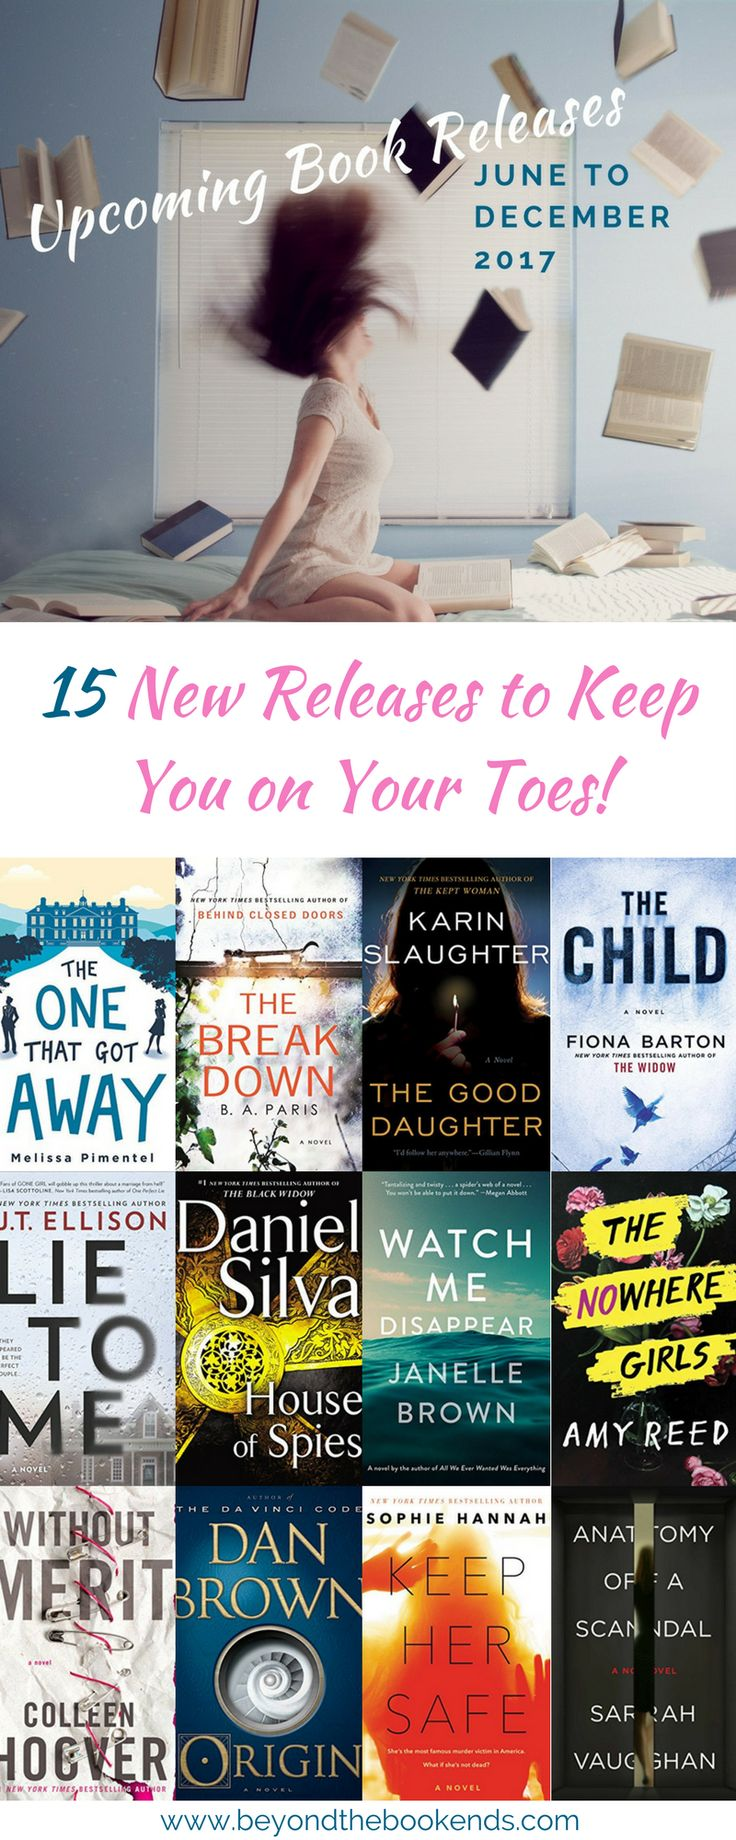 Like Gone Girl, Girl on the Train or Luckiest Girl Alive? Then check out this list of the hottest new thrillers being released in 2017!